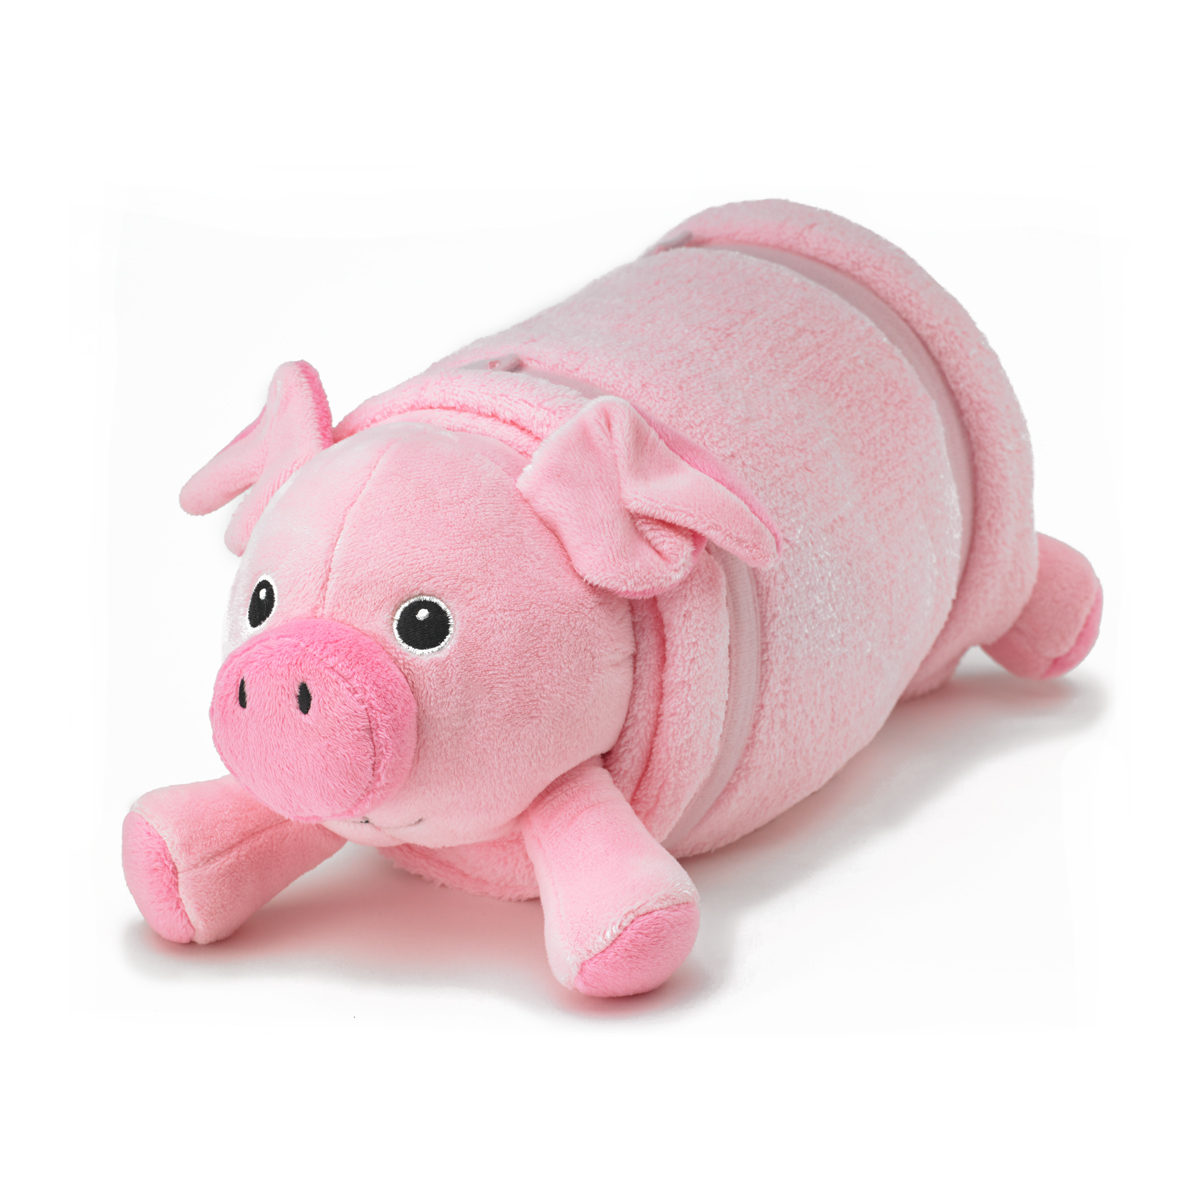 Pink Pig Plush Pet Pillow with Blanket ? Nap Mat Cover Pillow + Blanket